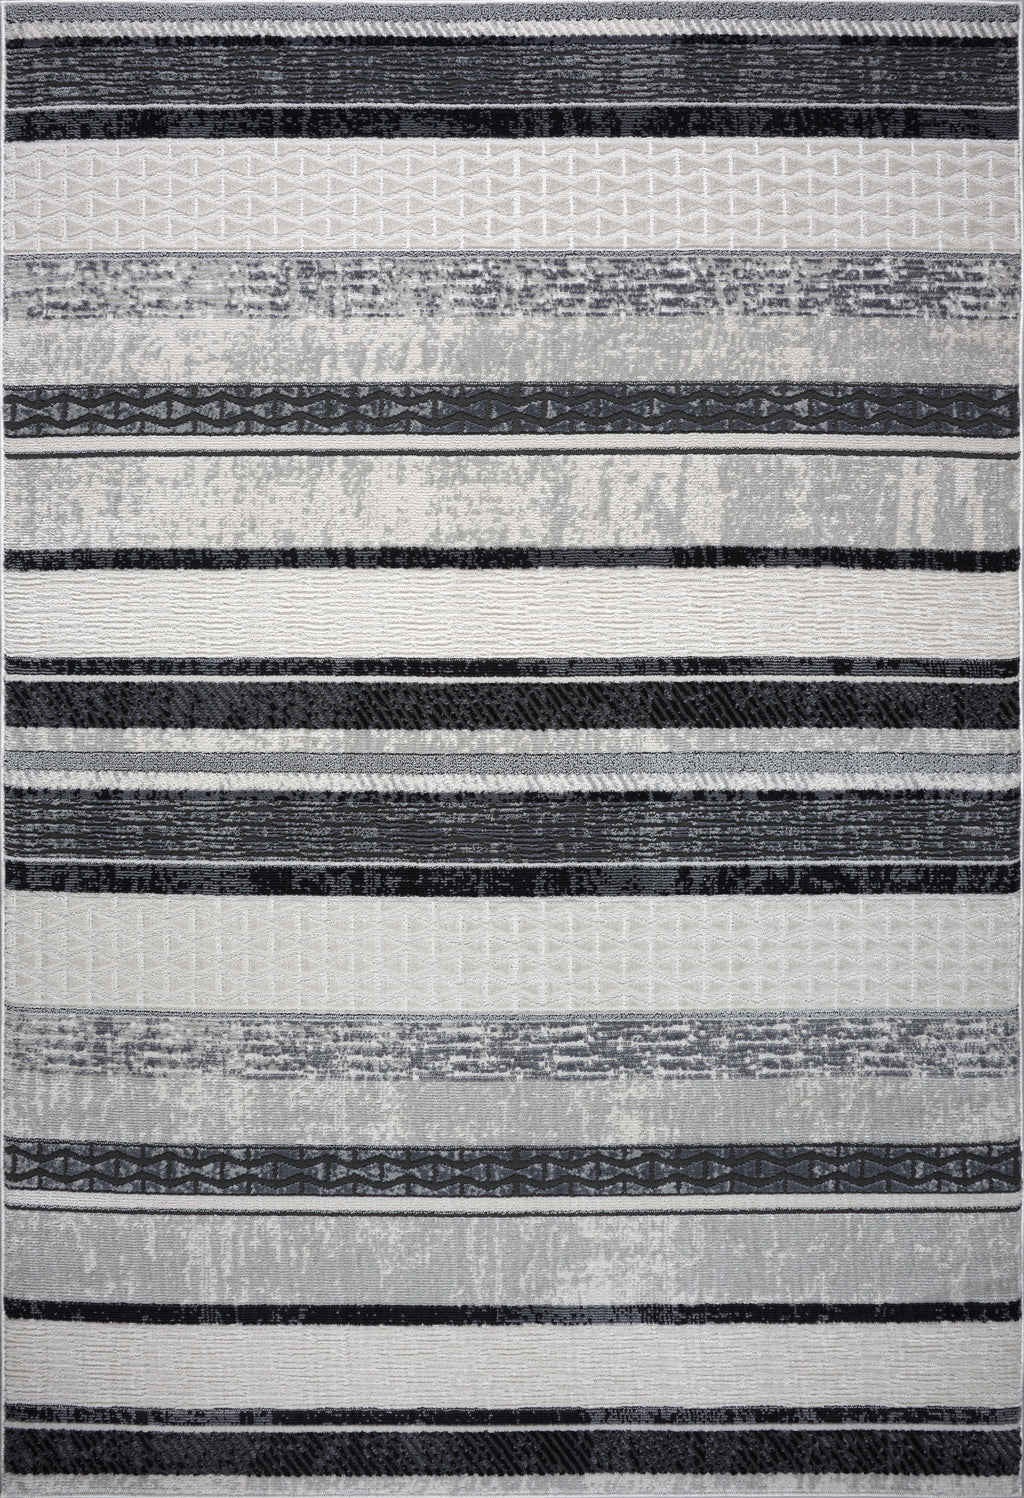 Lucas Dark Light Grey Modern Contemporary Area Rug